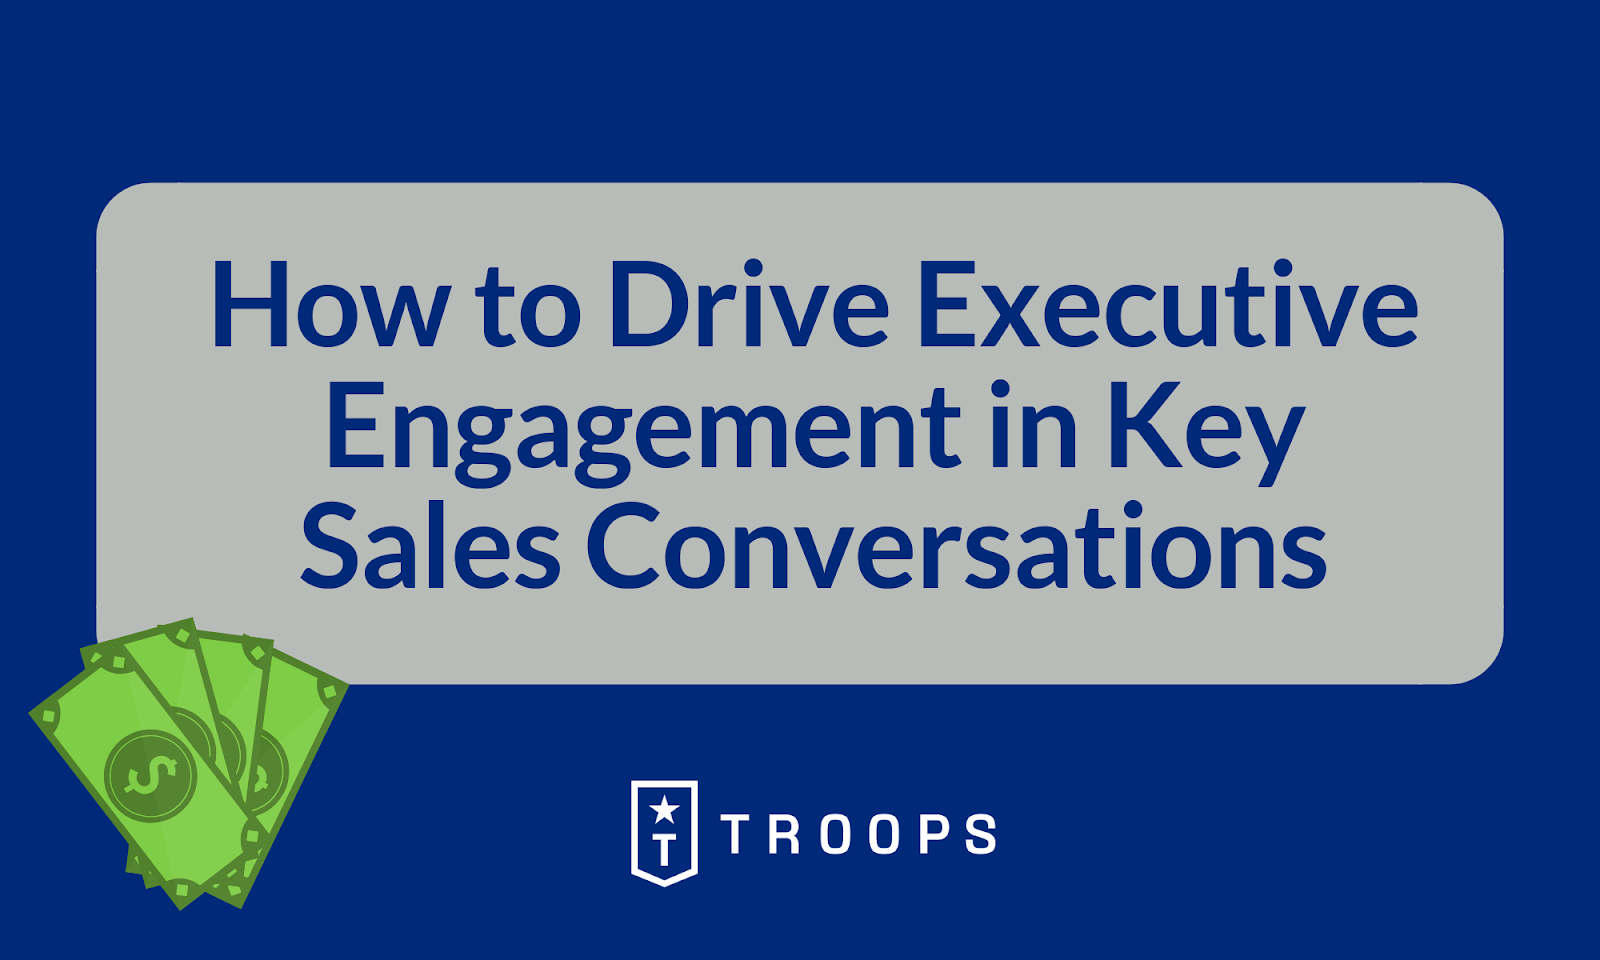 How to Drive Executive Engagement in Key Sales Conversations